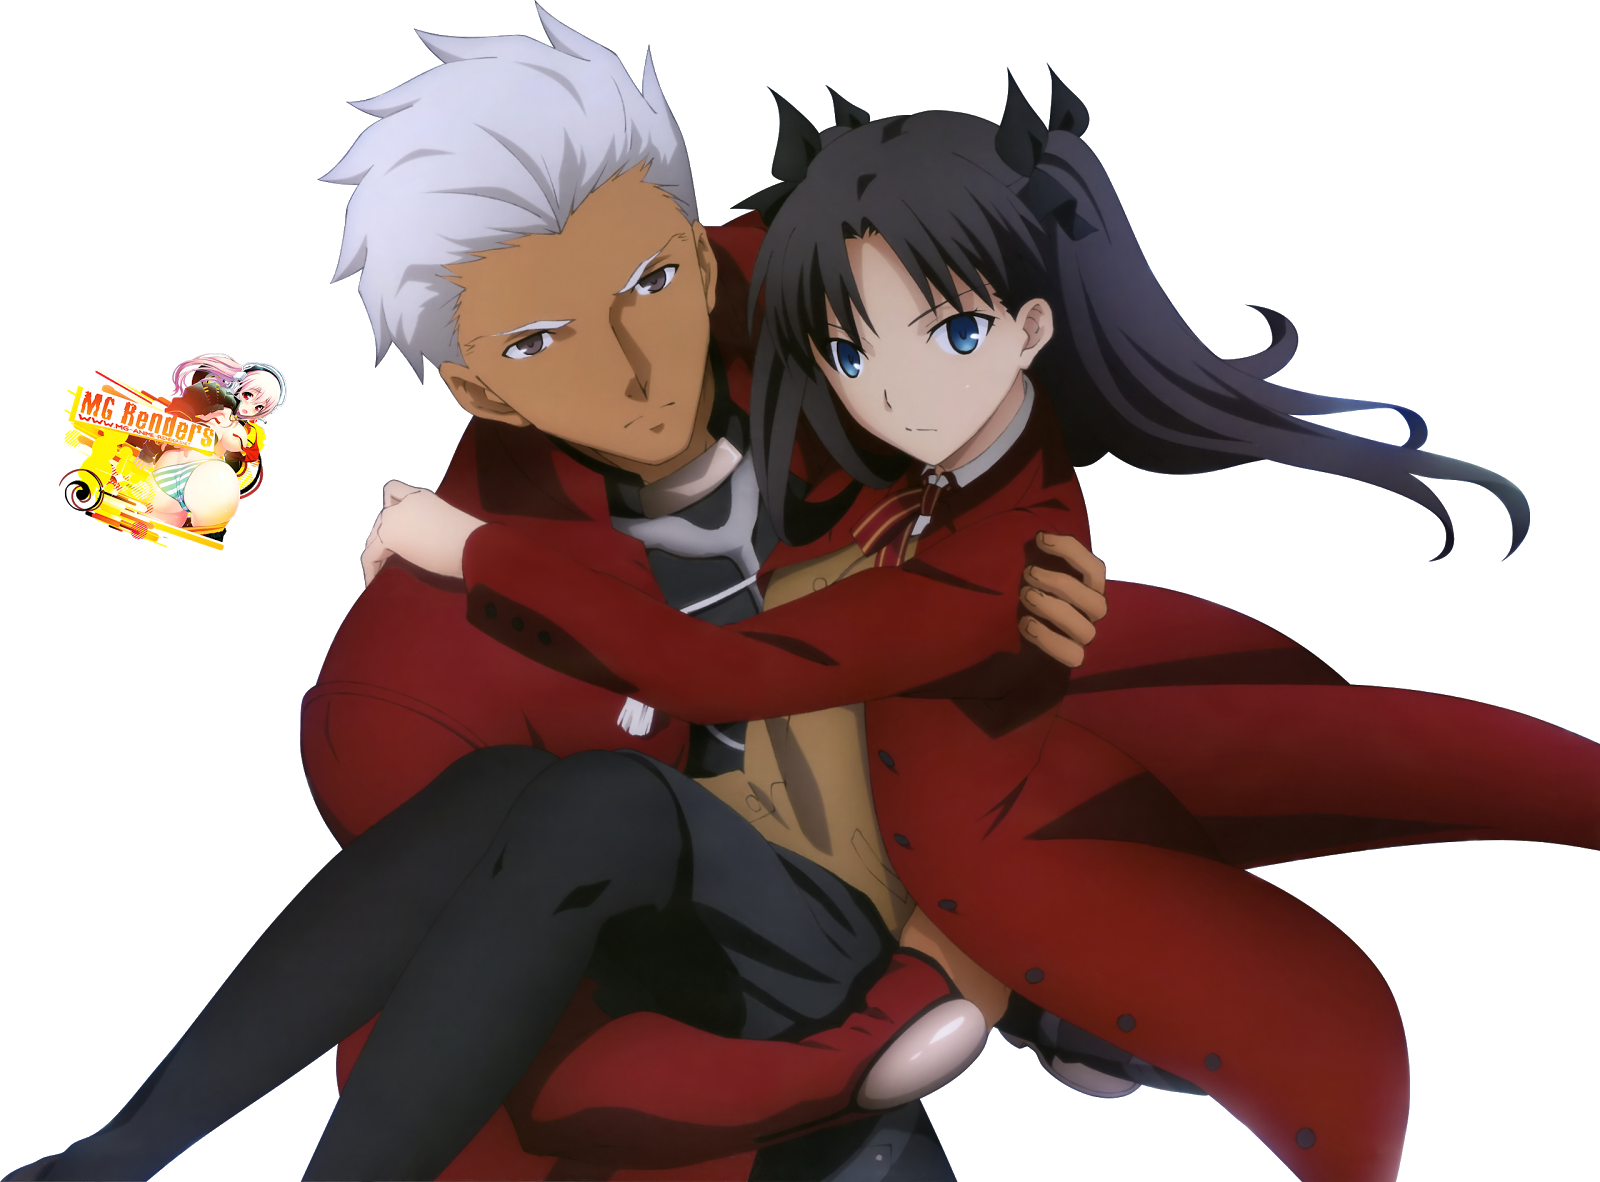 Tags: Anime, Render,  Archer,  Fate series,  Fate stay night,  Tohsaka Rin, PNG, Image, Picture